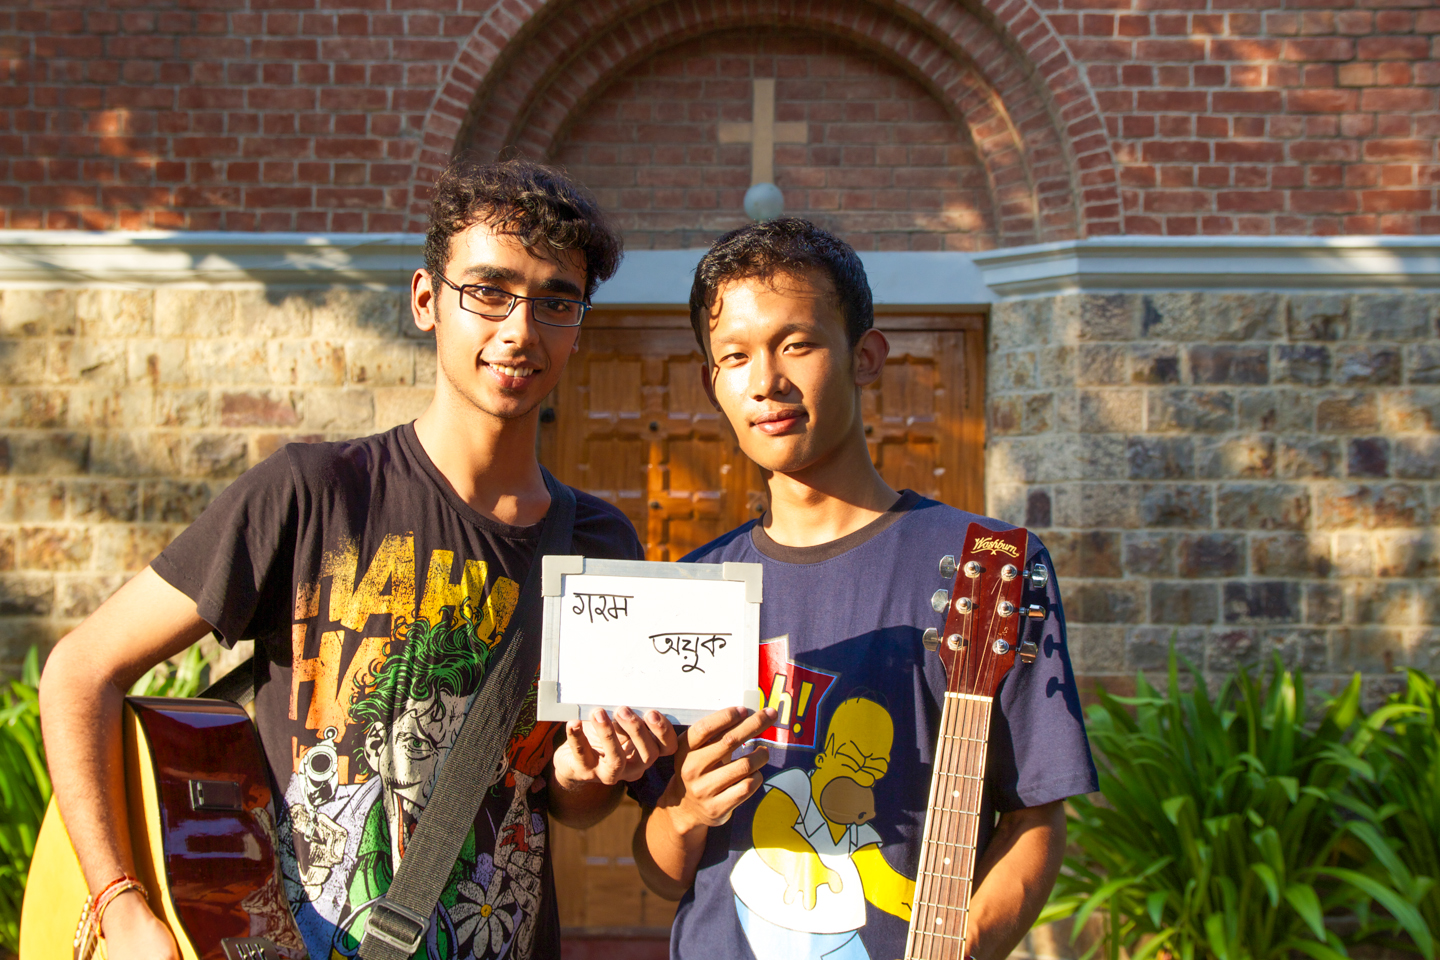 Risheek from Lucknow and Aruba from Manipur study at Delhi University, where in between classes and studying, they find time to make music. While Risheek thinks 'hot' when he hears the word chai, Aruba thinks 'morning.'